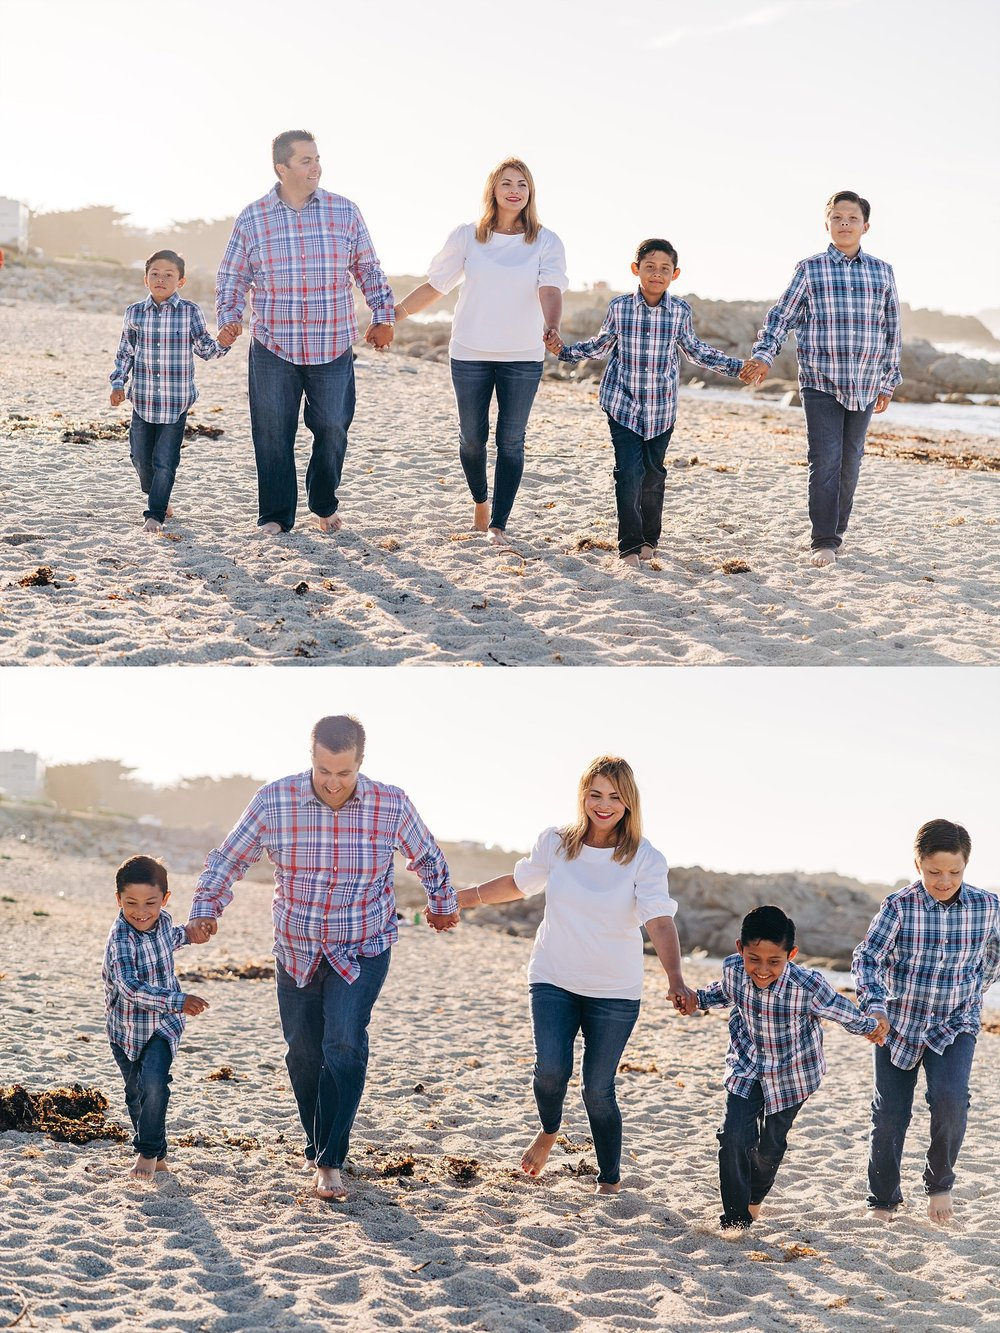 pacific-grove-family-photographer-john-denver-drew-zavala--06738.jpg